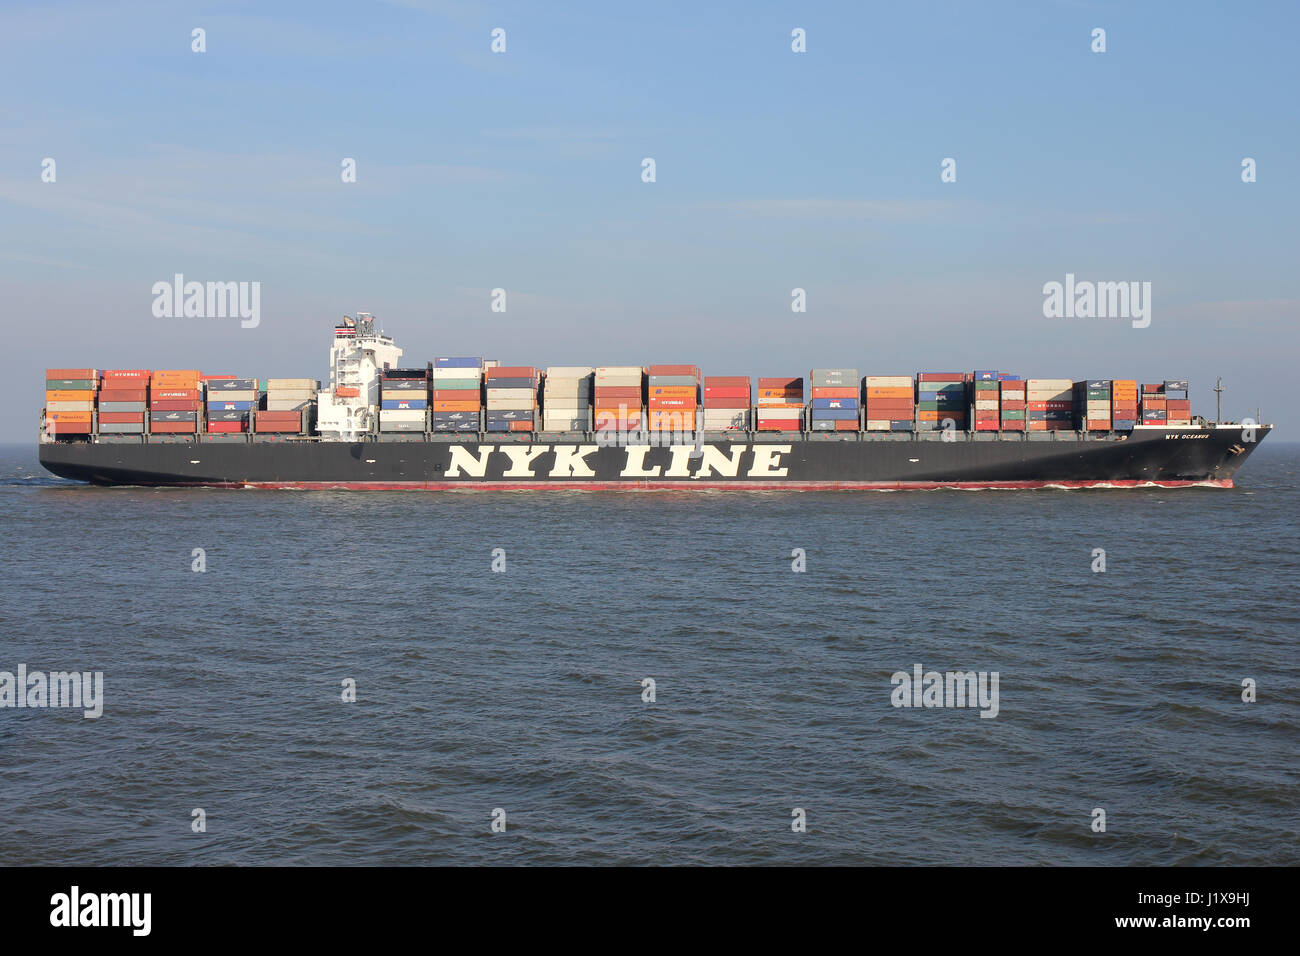 NYK OCEANUS on the river Elbe. Nippon Yusen Kabushiki Kaisha (NYK) is one of the oldest and largest shipping companies - Stock Image